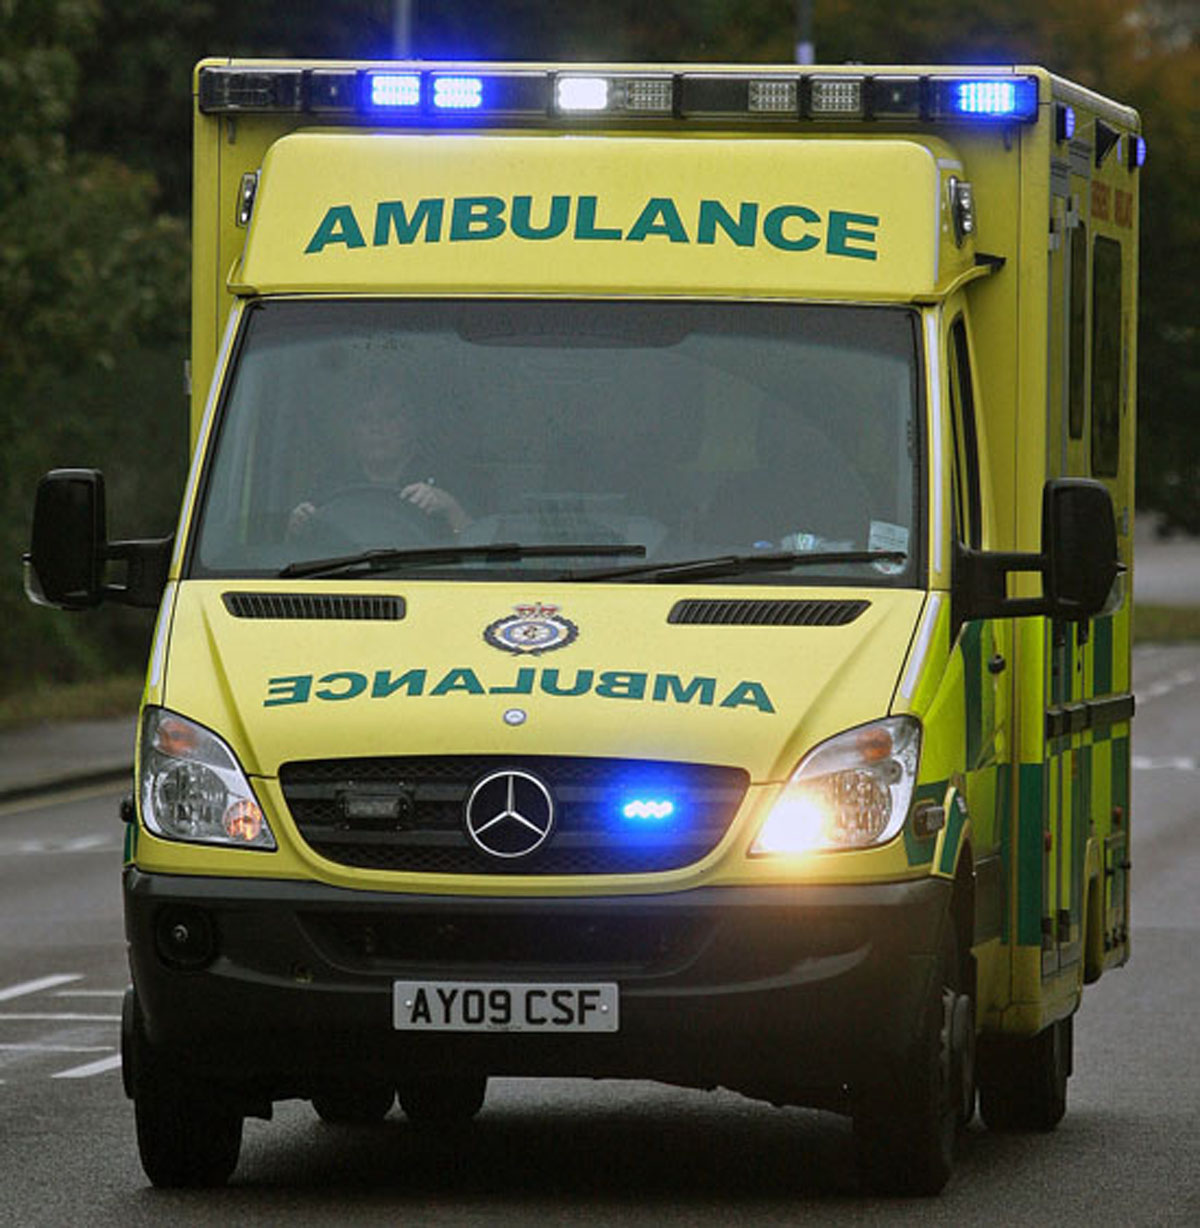 A man was left in the care of ambulance staff